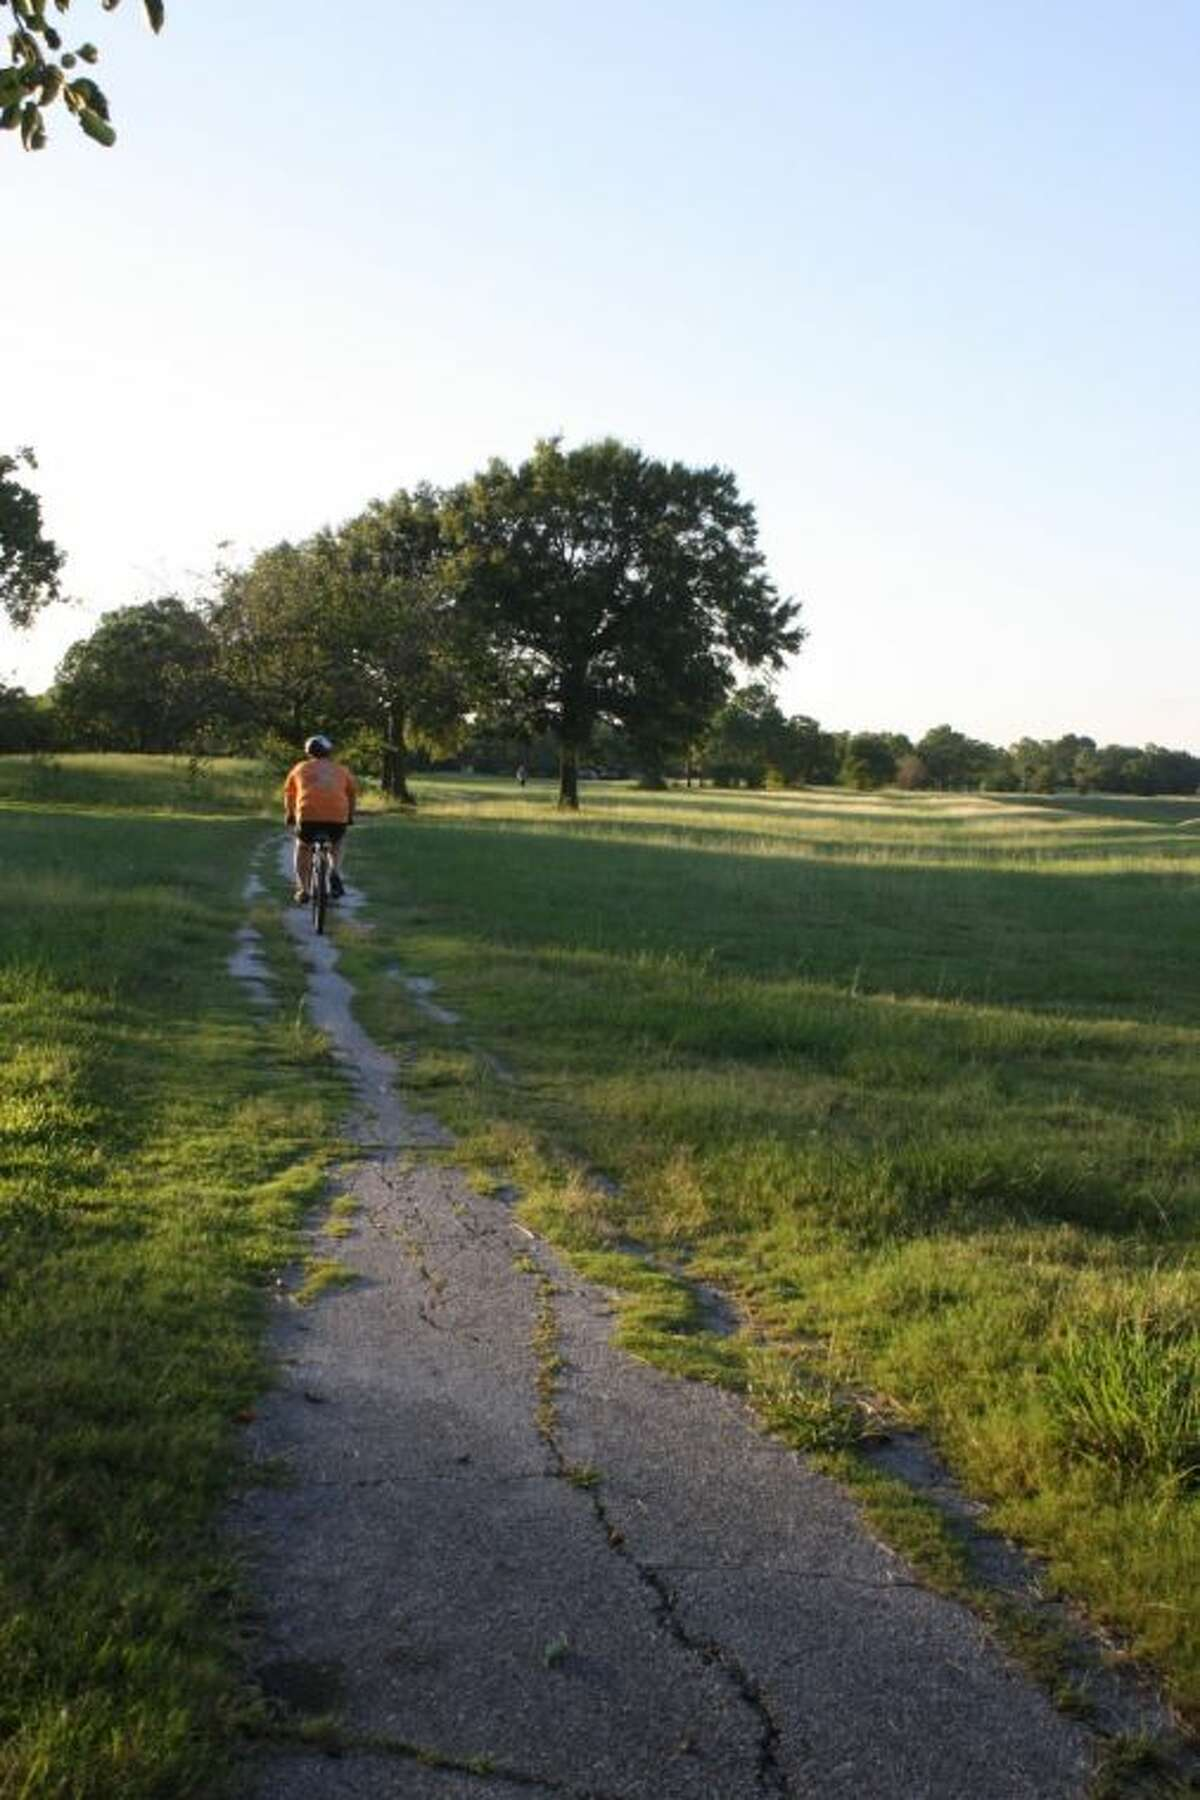 The nearly 200 acres of the former golf course in Clear Lake will soon be a green space designed to significantly decrease flooding in surrounding residential areas.